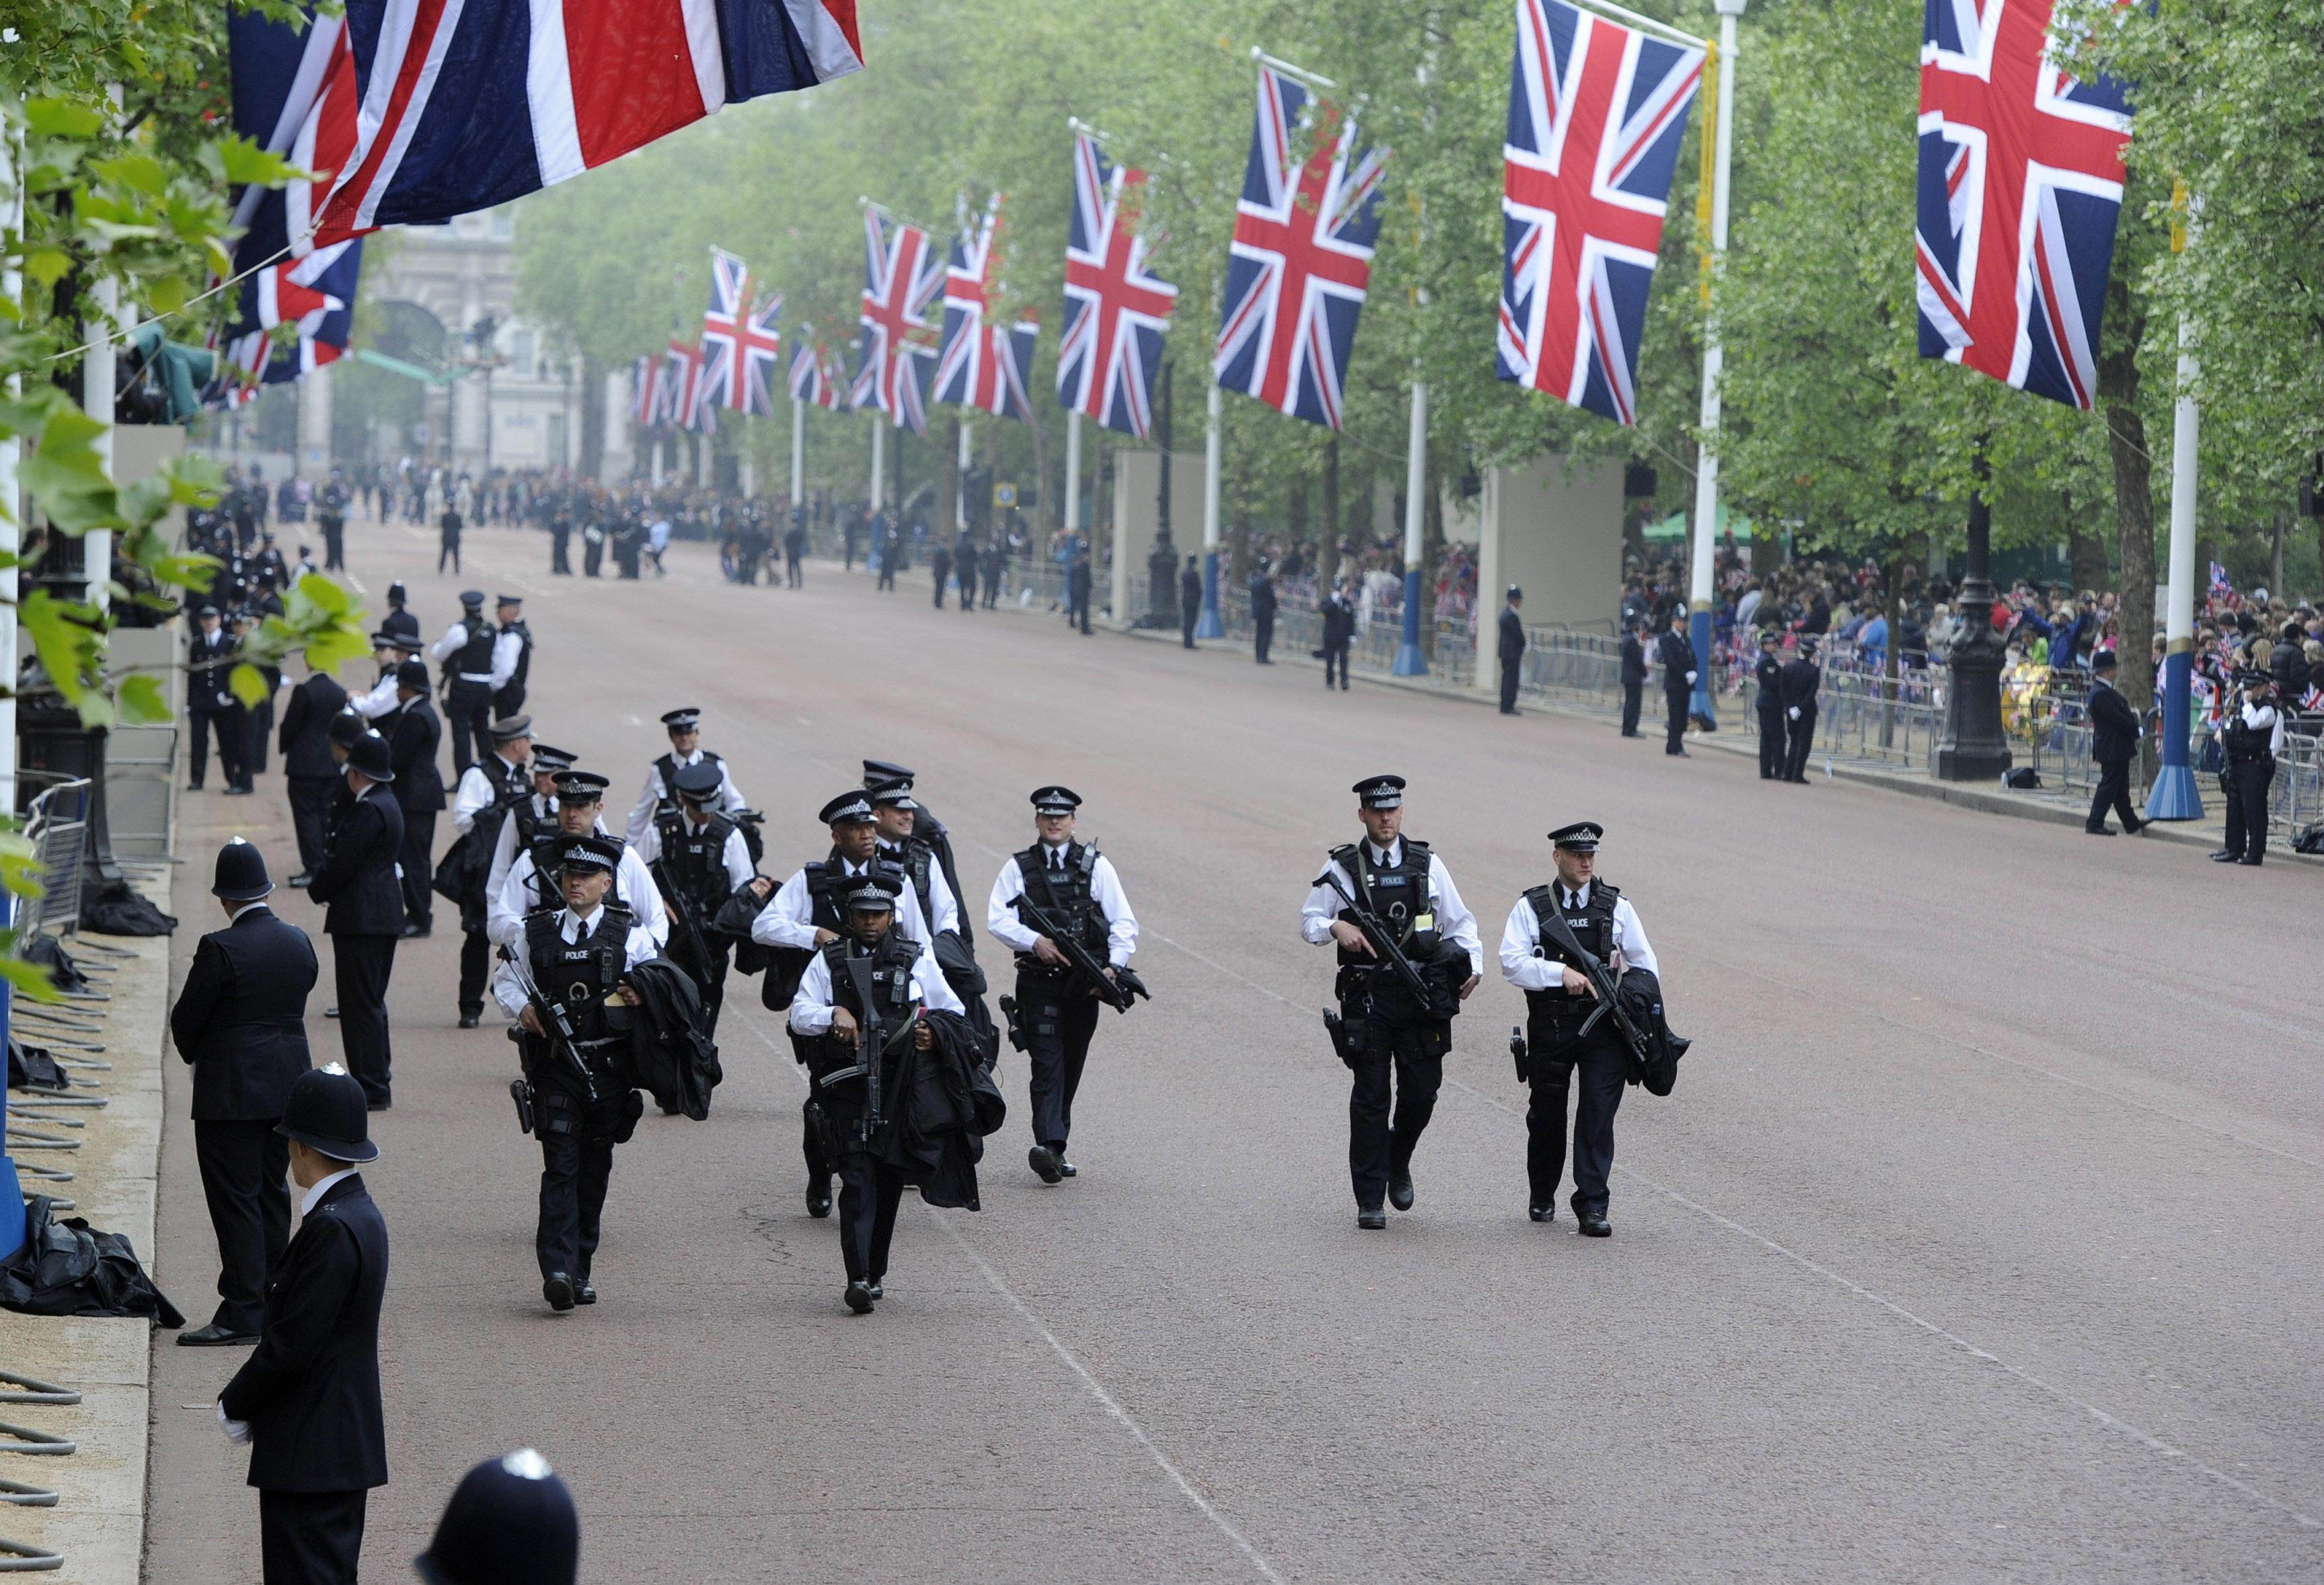 Heavy security at the royal wedding